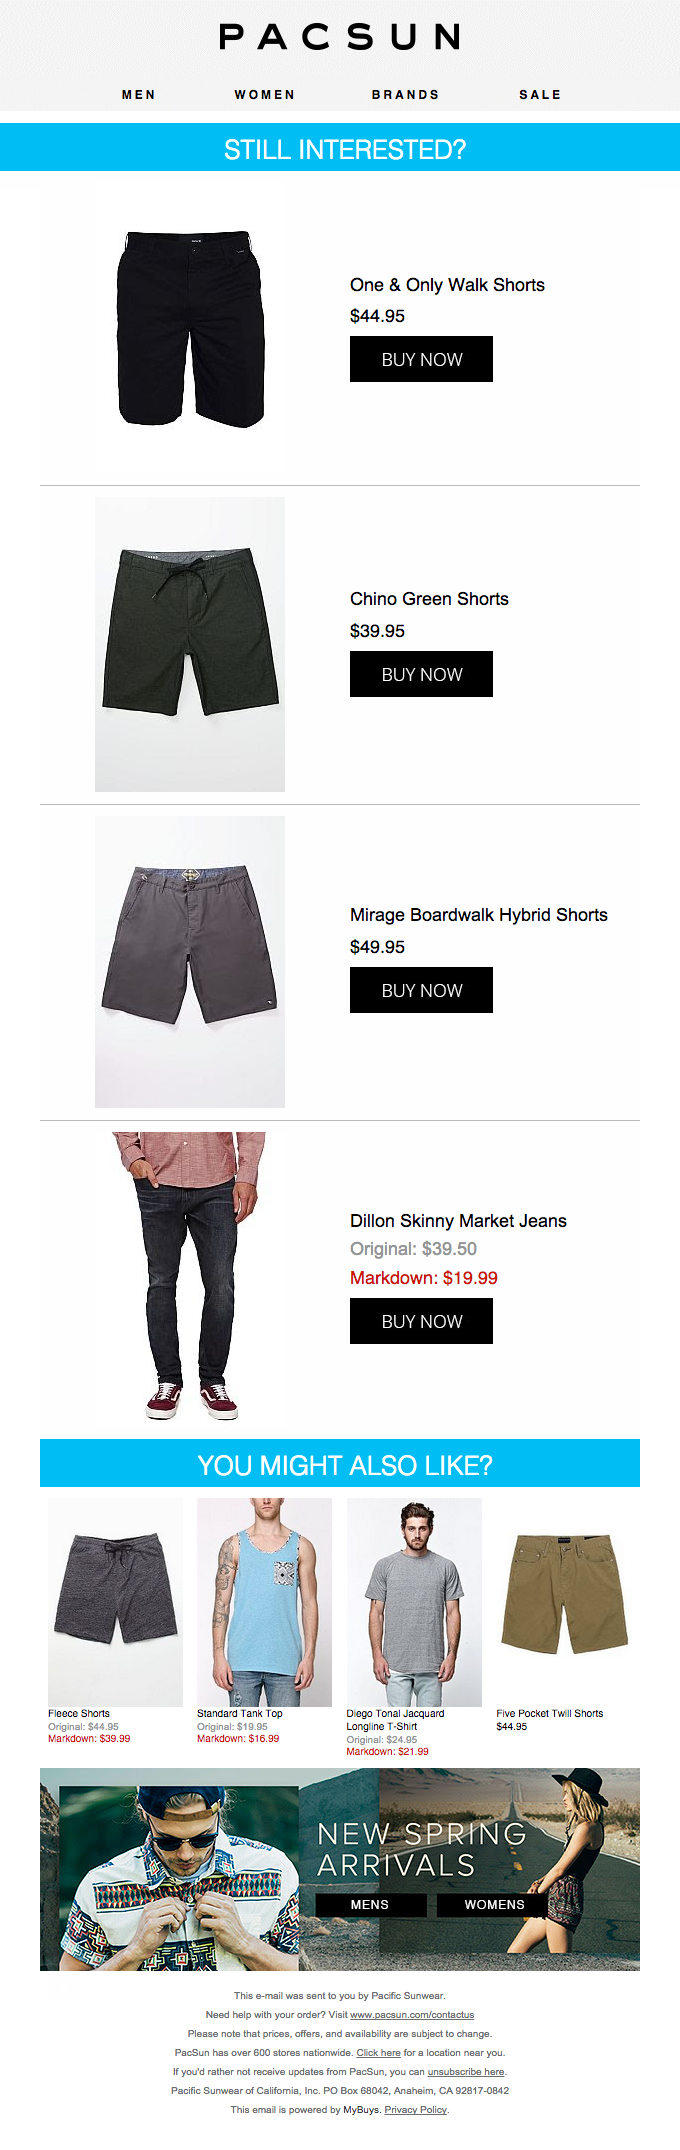 email template Pacsun